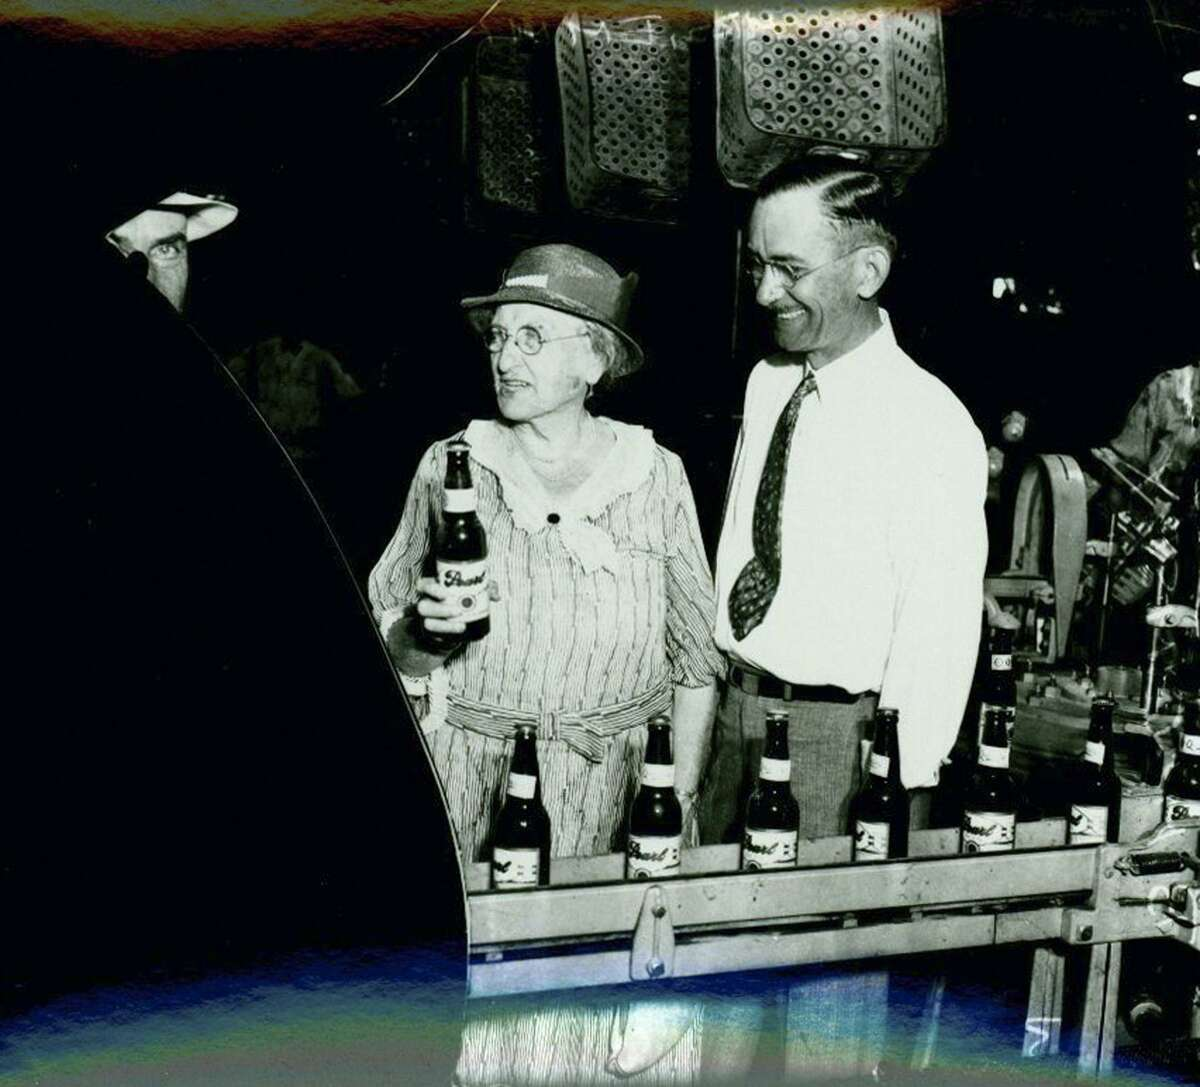 Emma Koehler, left, holding the first bottle of beer produced by Pearl Brewery after the repeal of Prohibition in 1933. Beside her is general manager B.B. McGimsey.